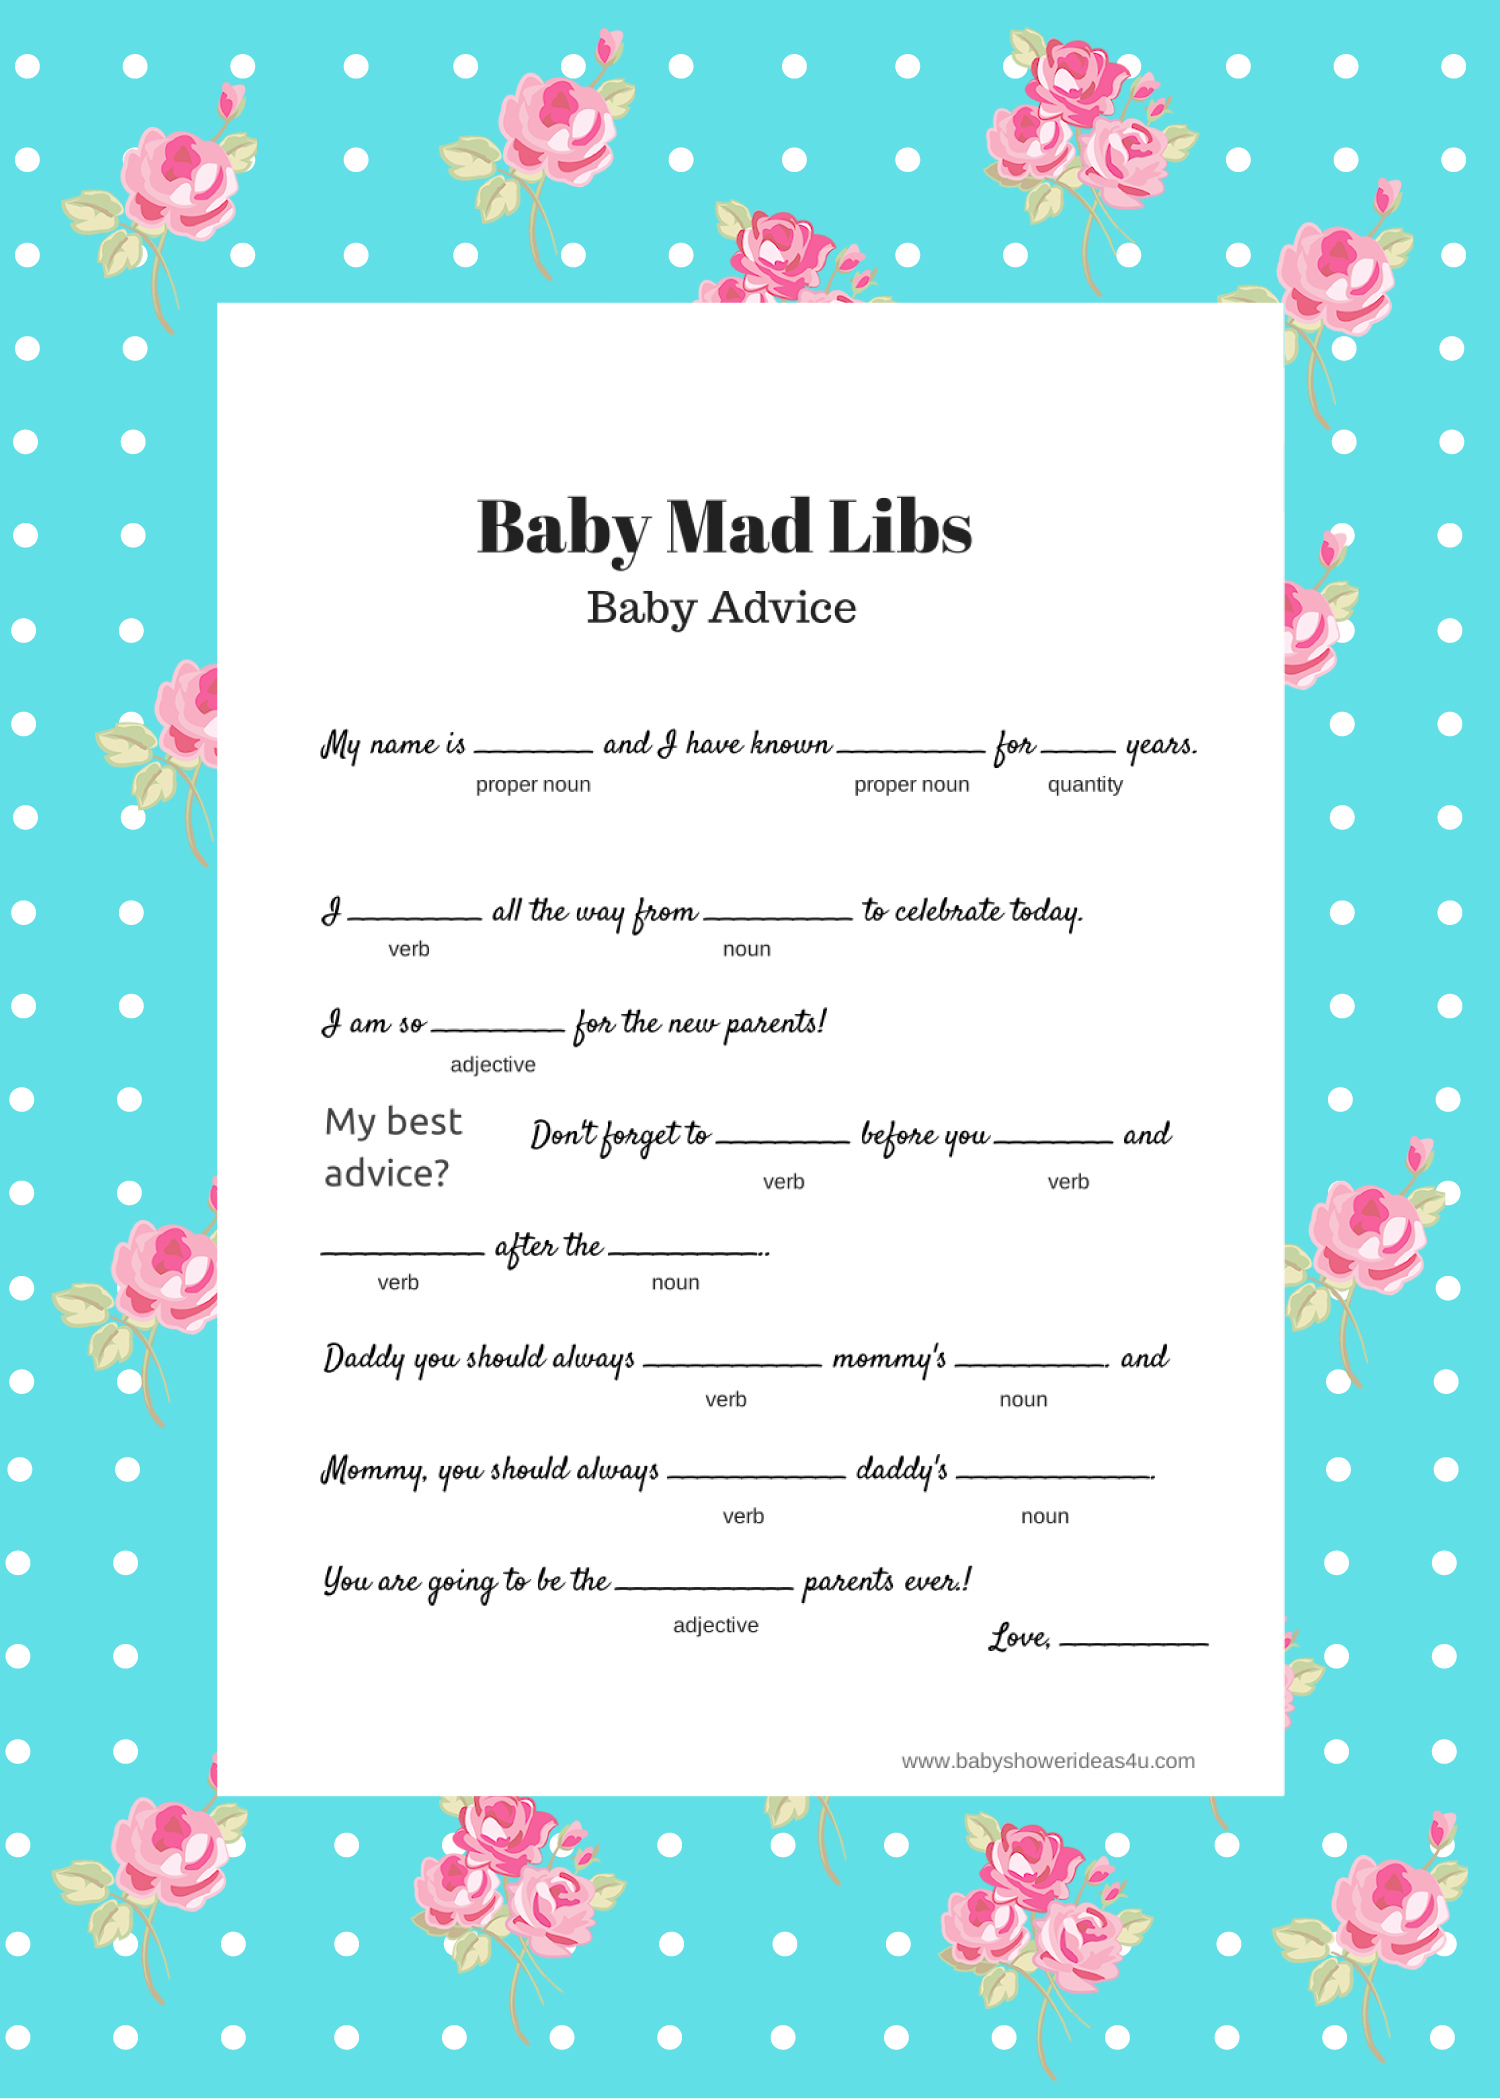 Free Baby Mad Libs Game - Baby Advice - Baby Shower Ideas - Themes - Free Printable Online Baby Shower Games